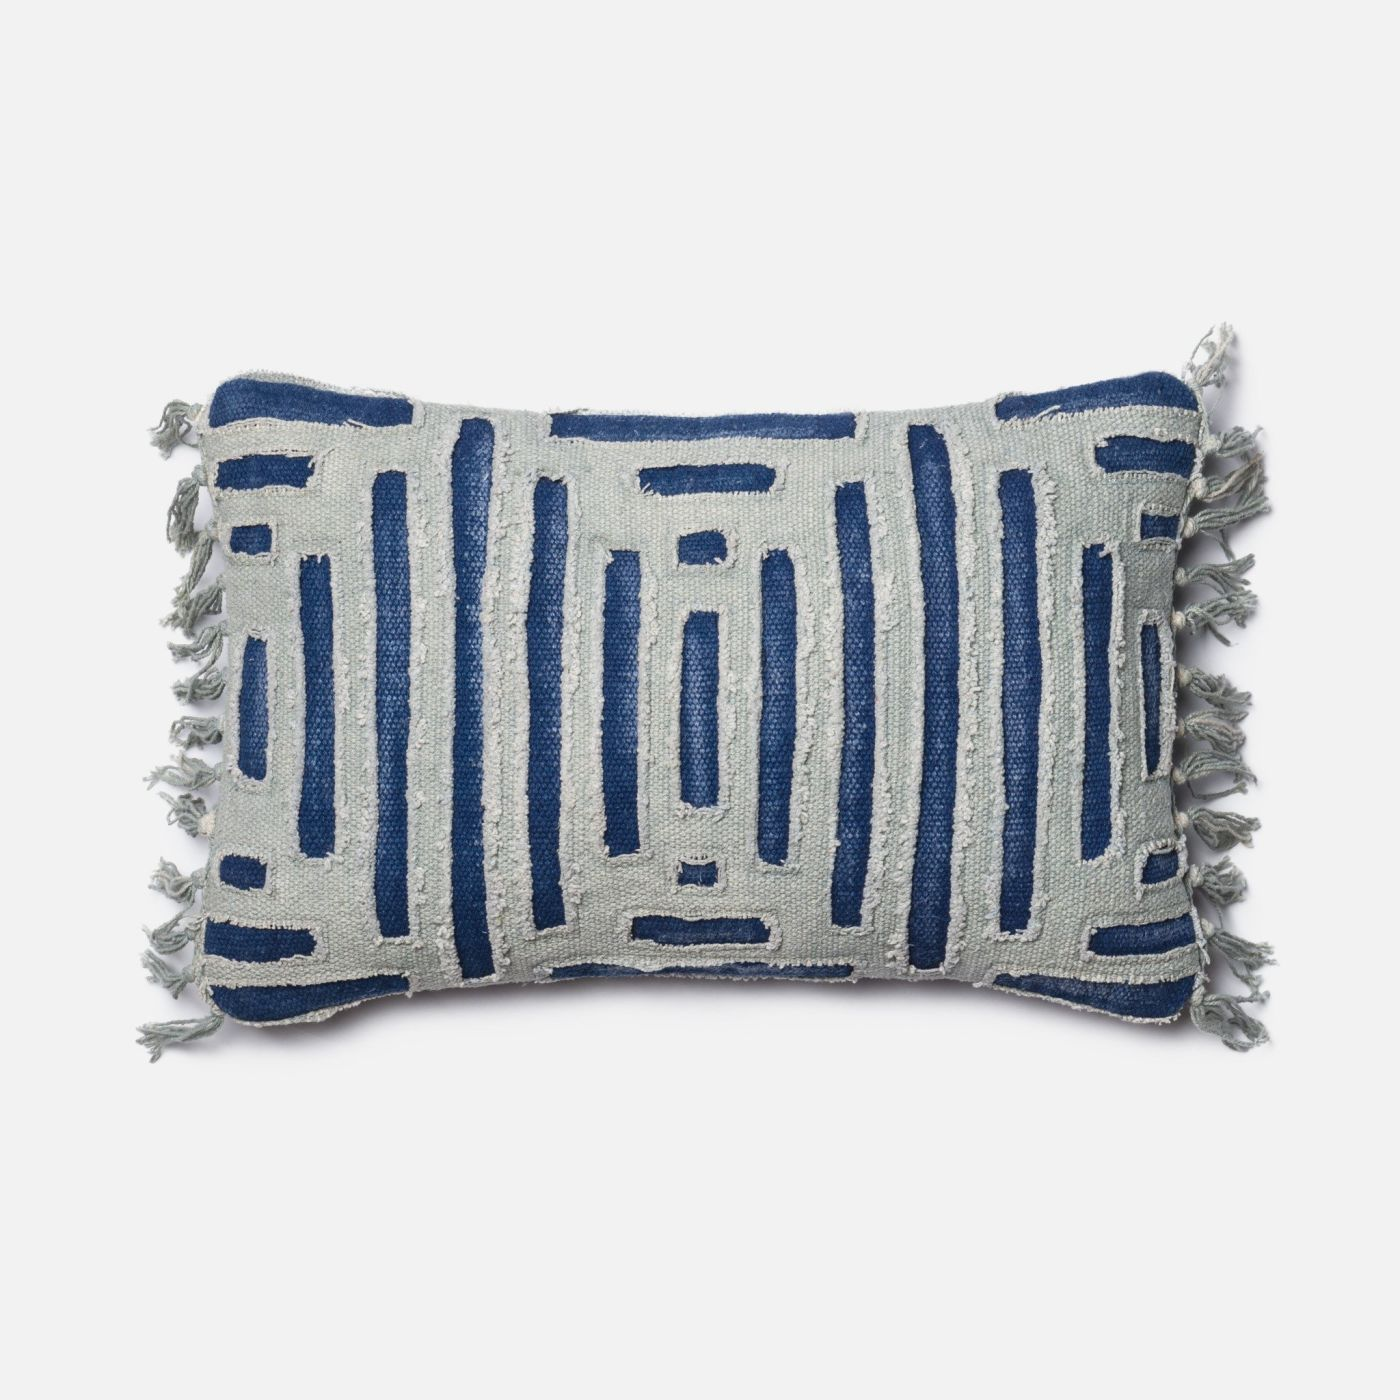 Throw Pillows Under 5 Dollars : Loloi Rugs Loloi Blue / Grey Decorative Throw Pillow (P0405) DSETP0405BBGYPIL5. Only $139.00 at ...